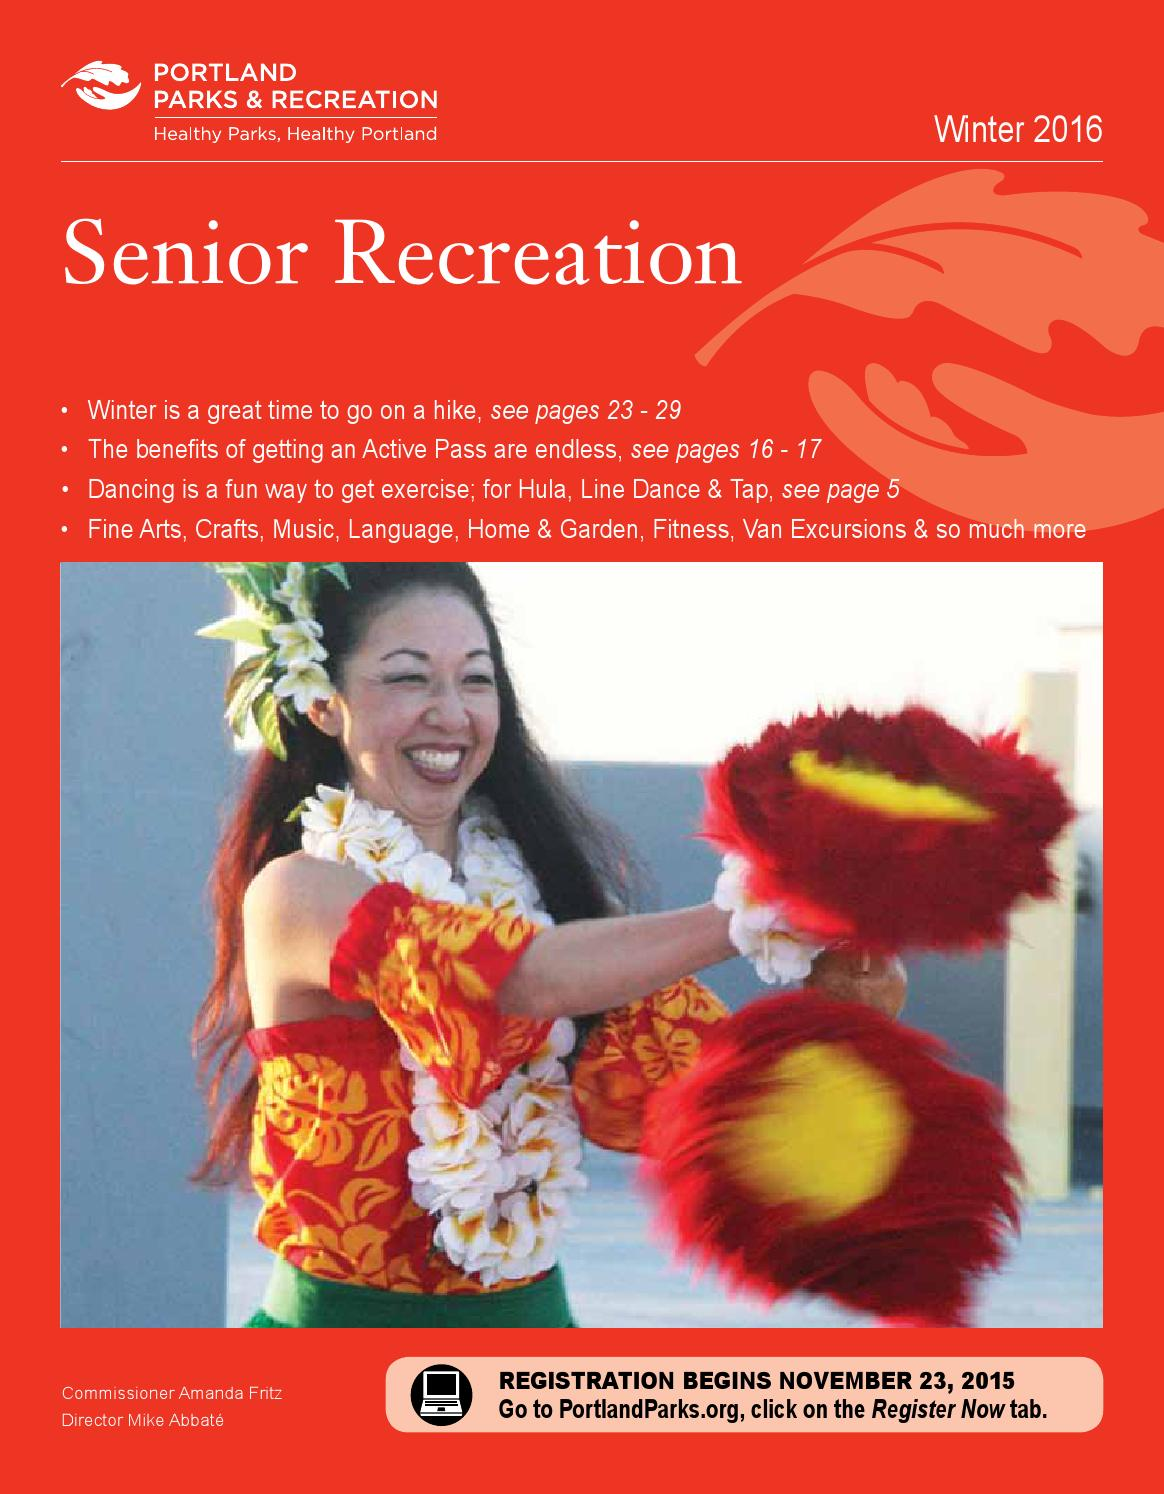 http://issuu.com/portlandparks/docs/pp_r_senior_rec_winter_2016_guide_f